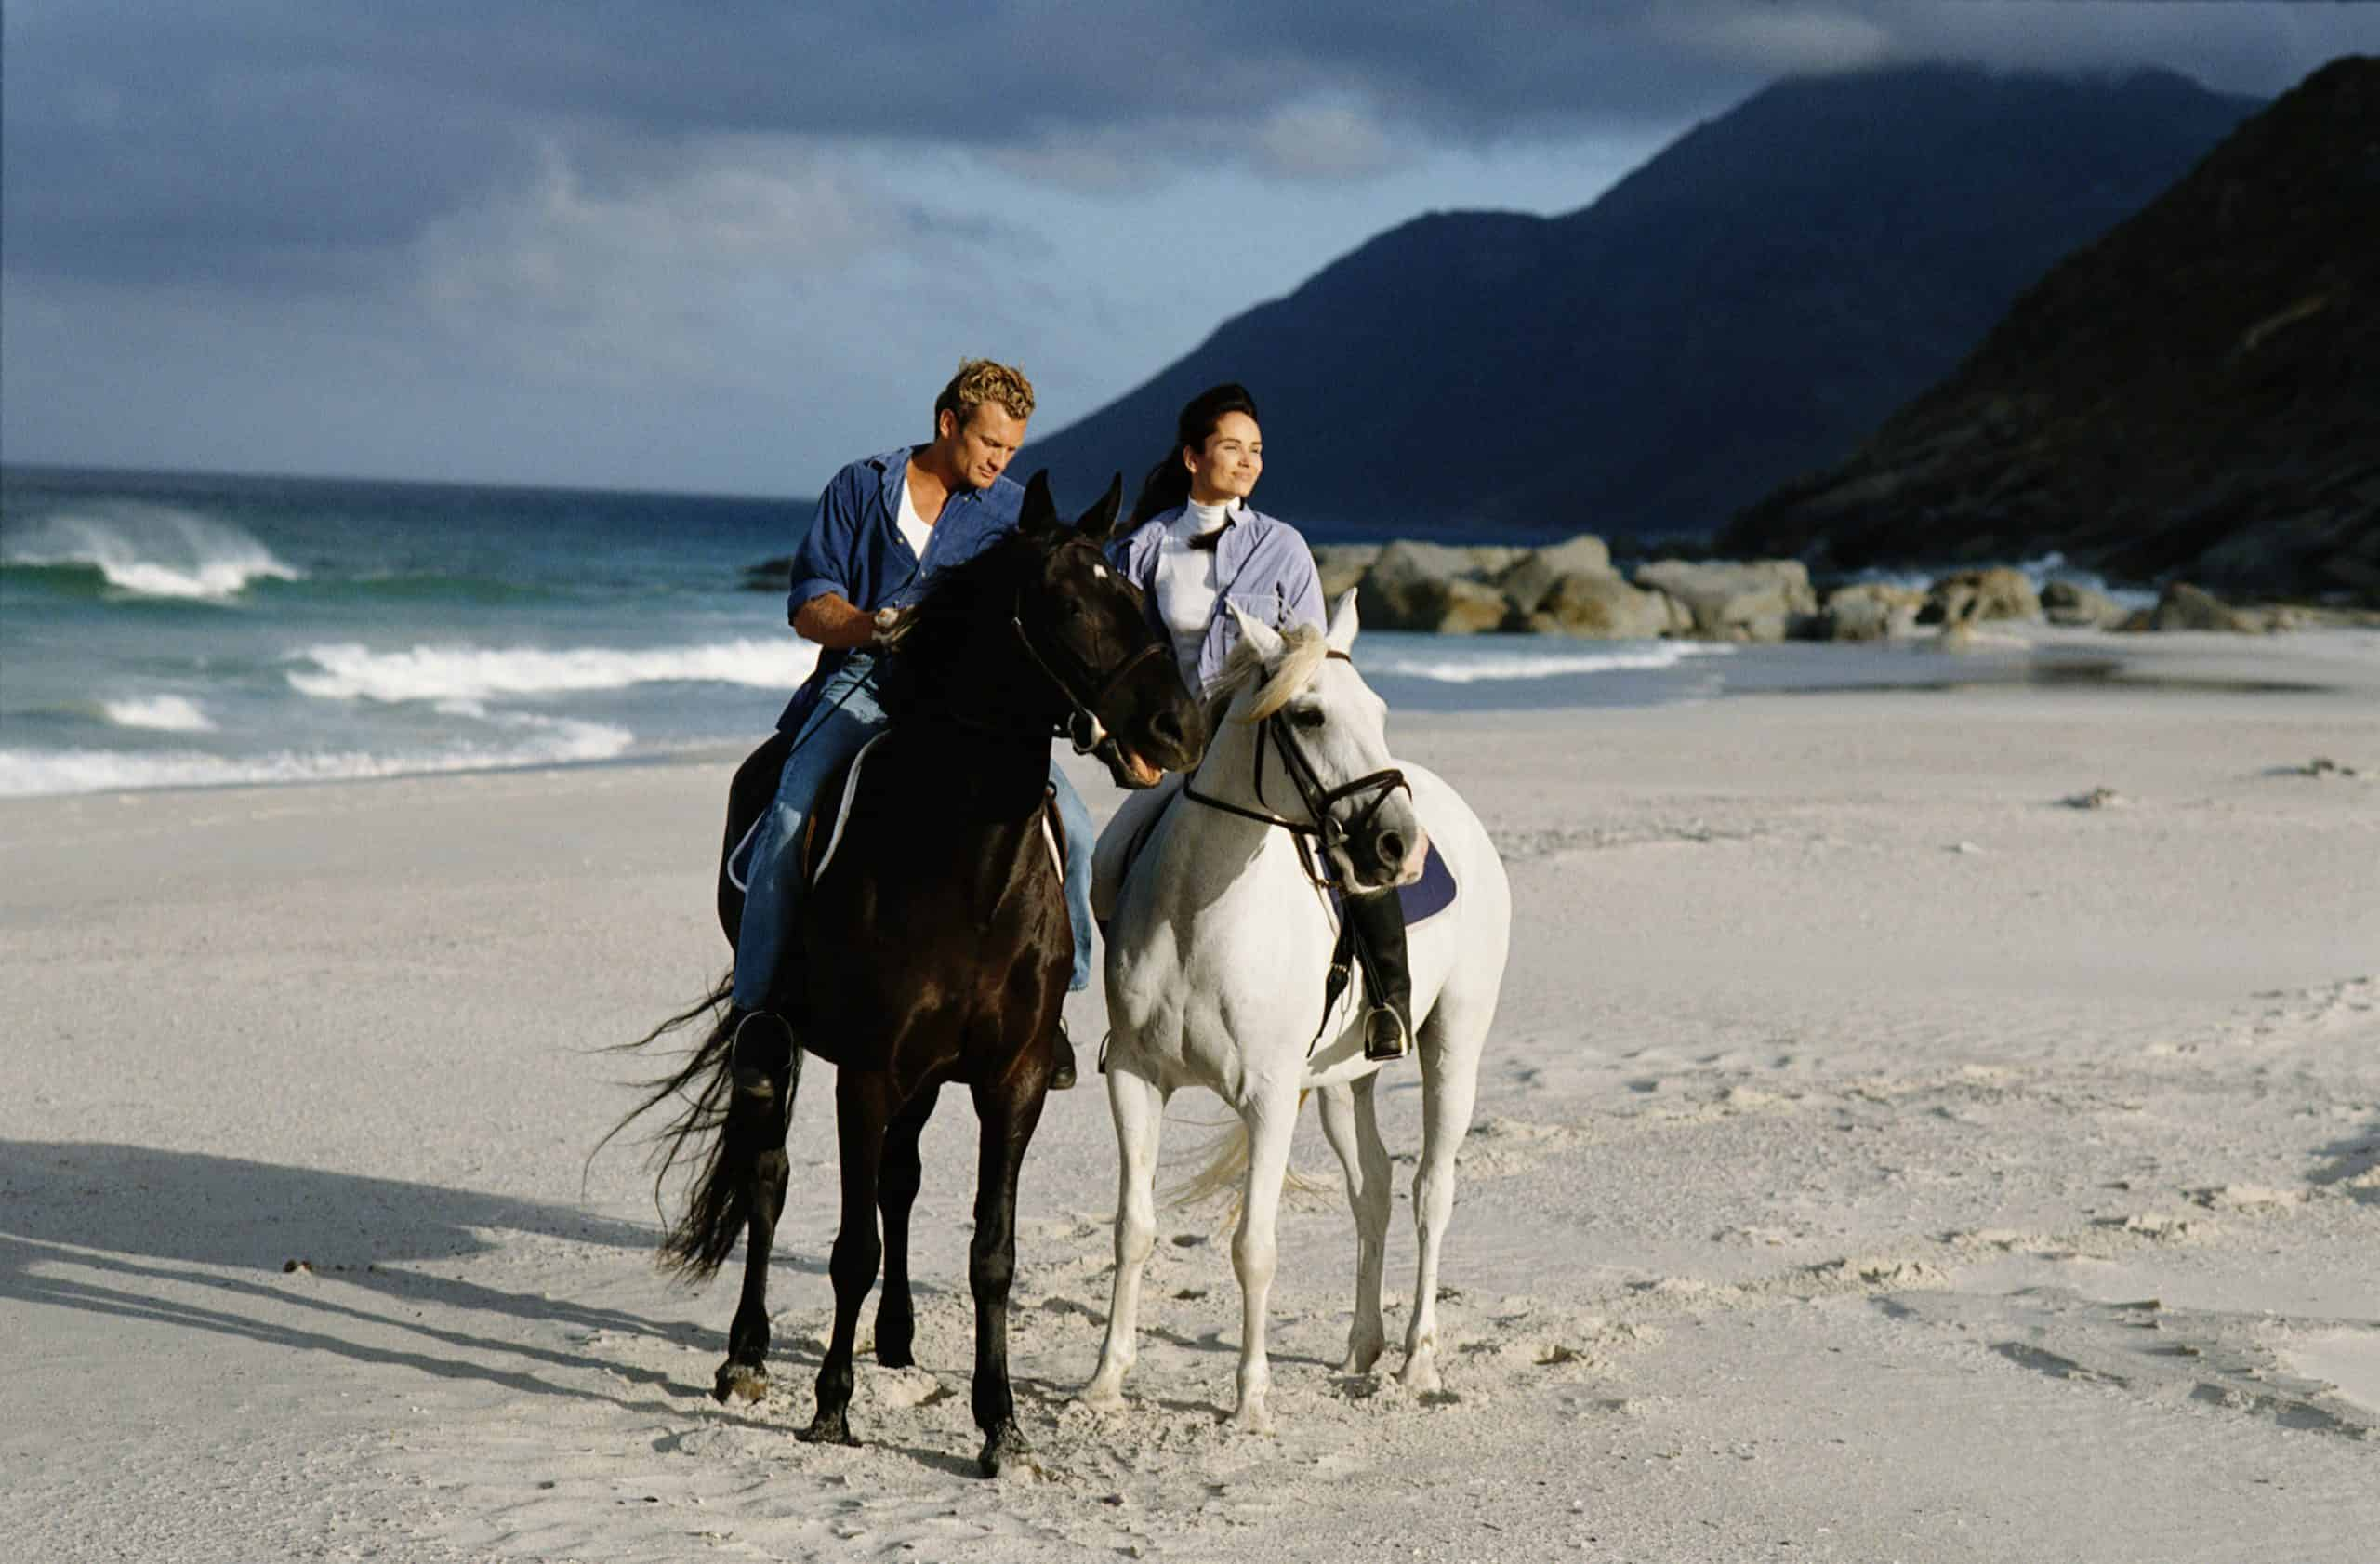 horseback riding on the beach safety tips